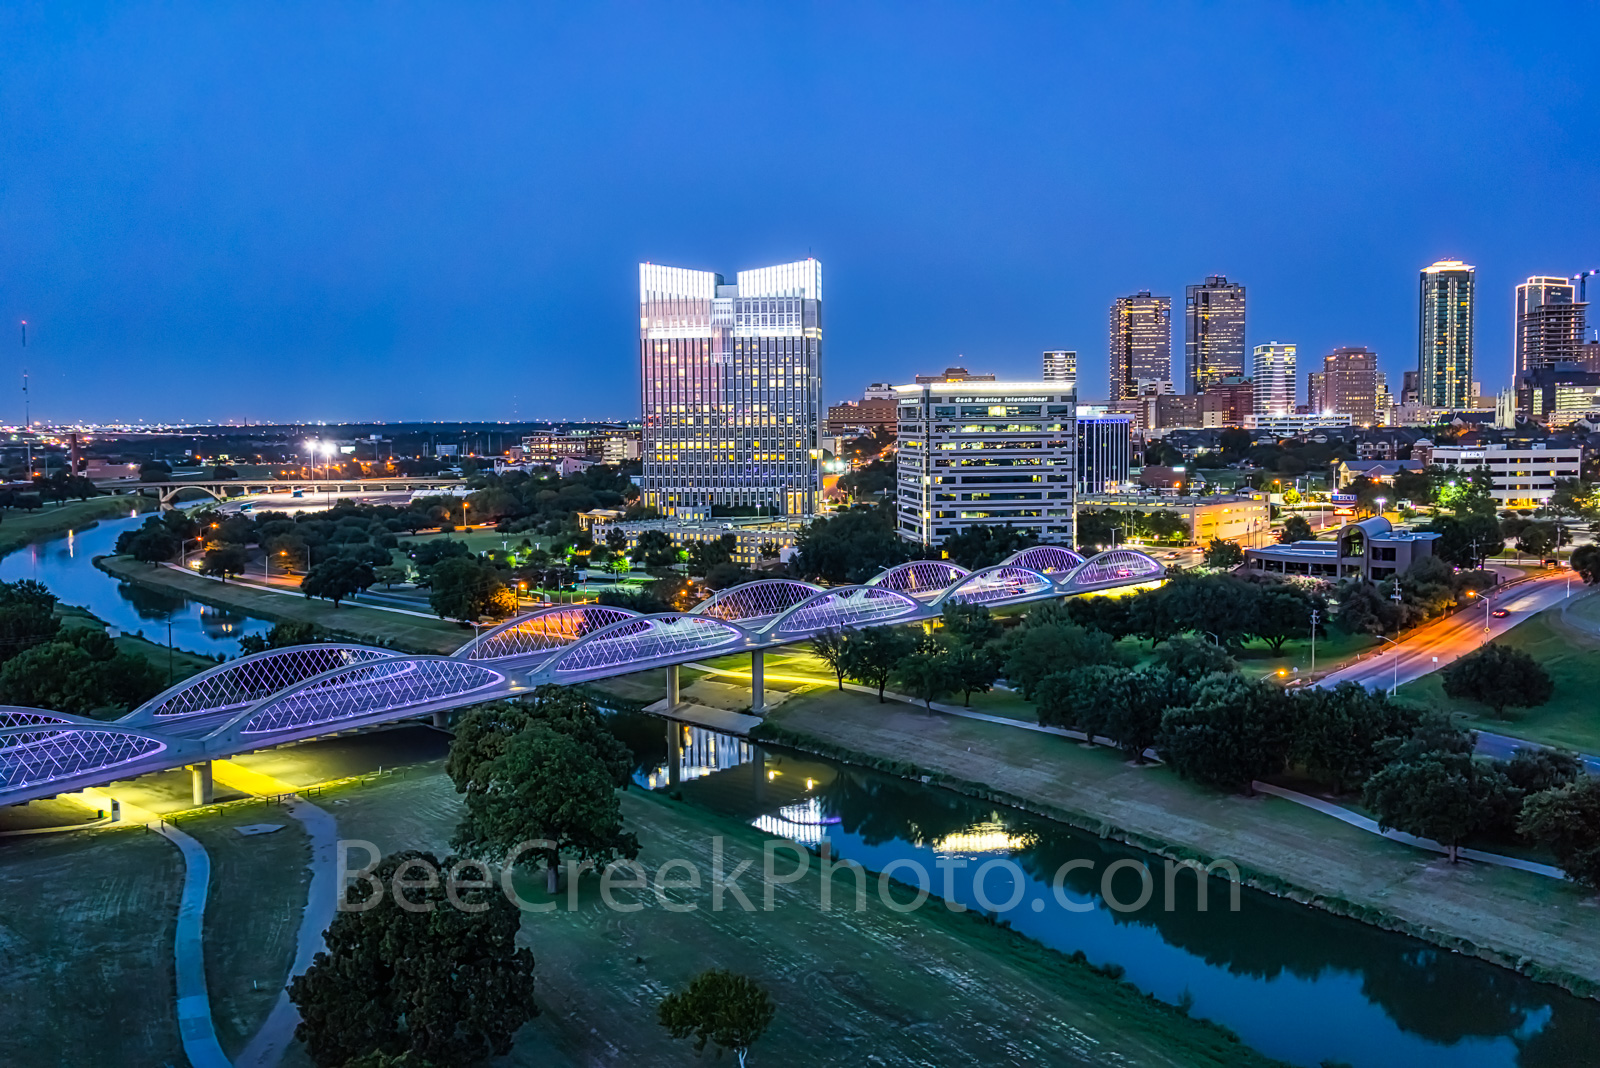 Fort Worth Skyline at Twilight -  Another aerial capture of the Fort Worth skyline at twilight. Love the purple lights on the...